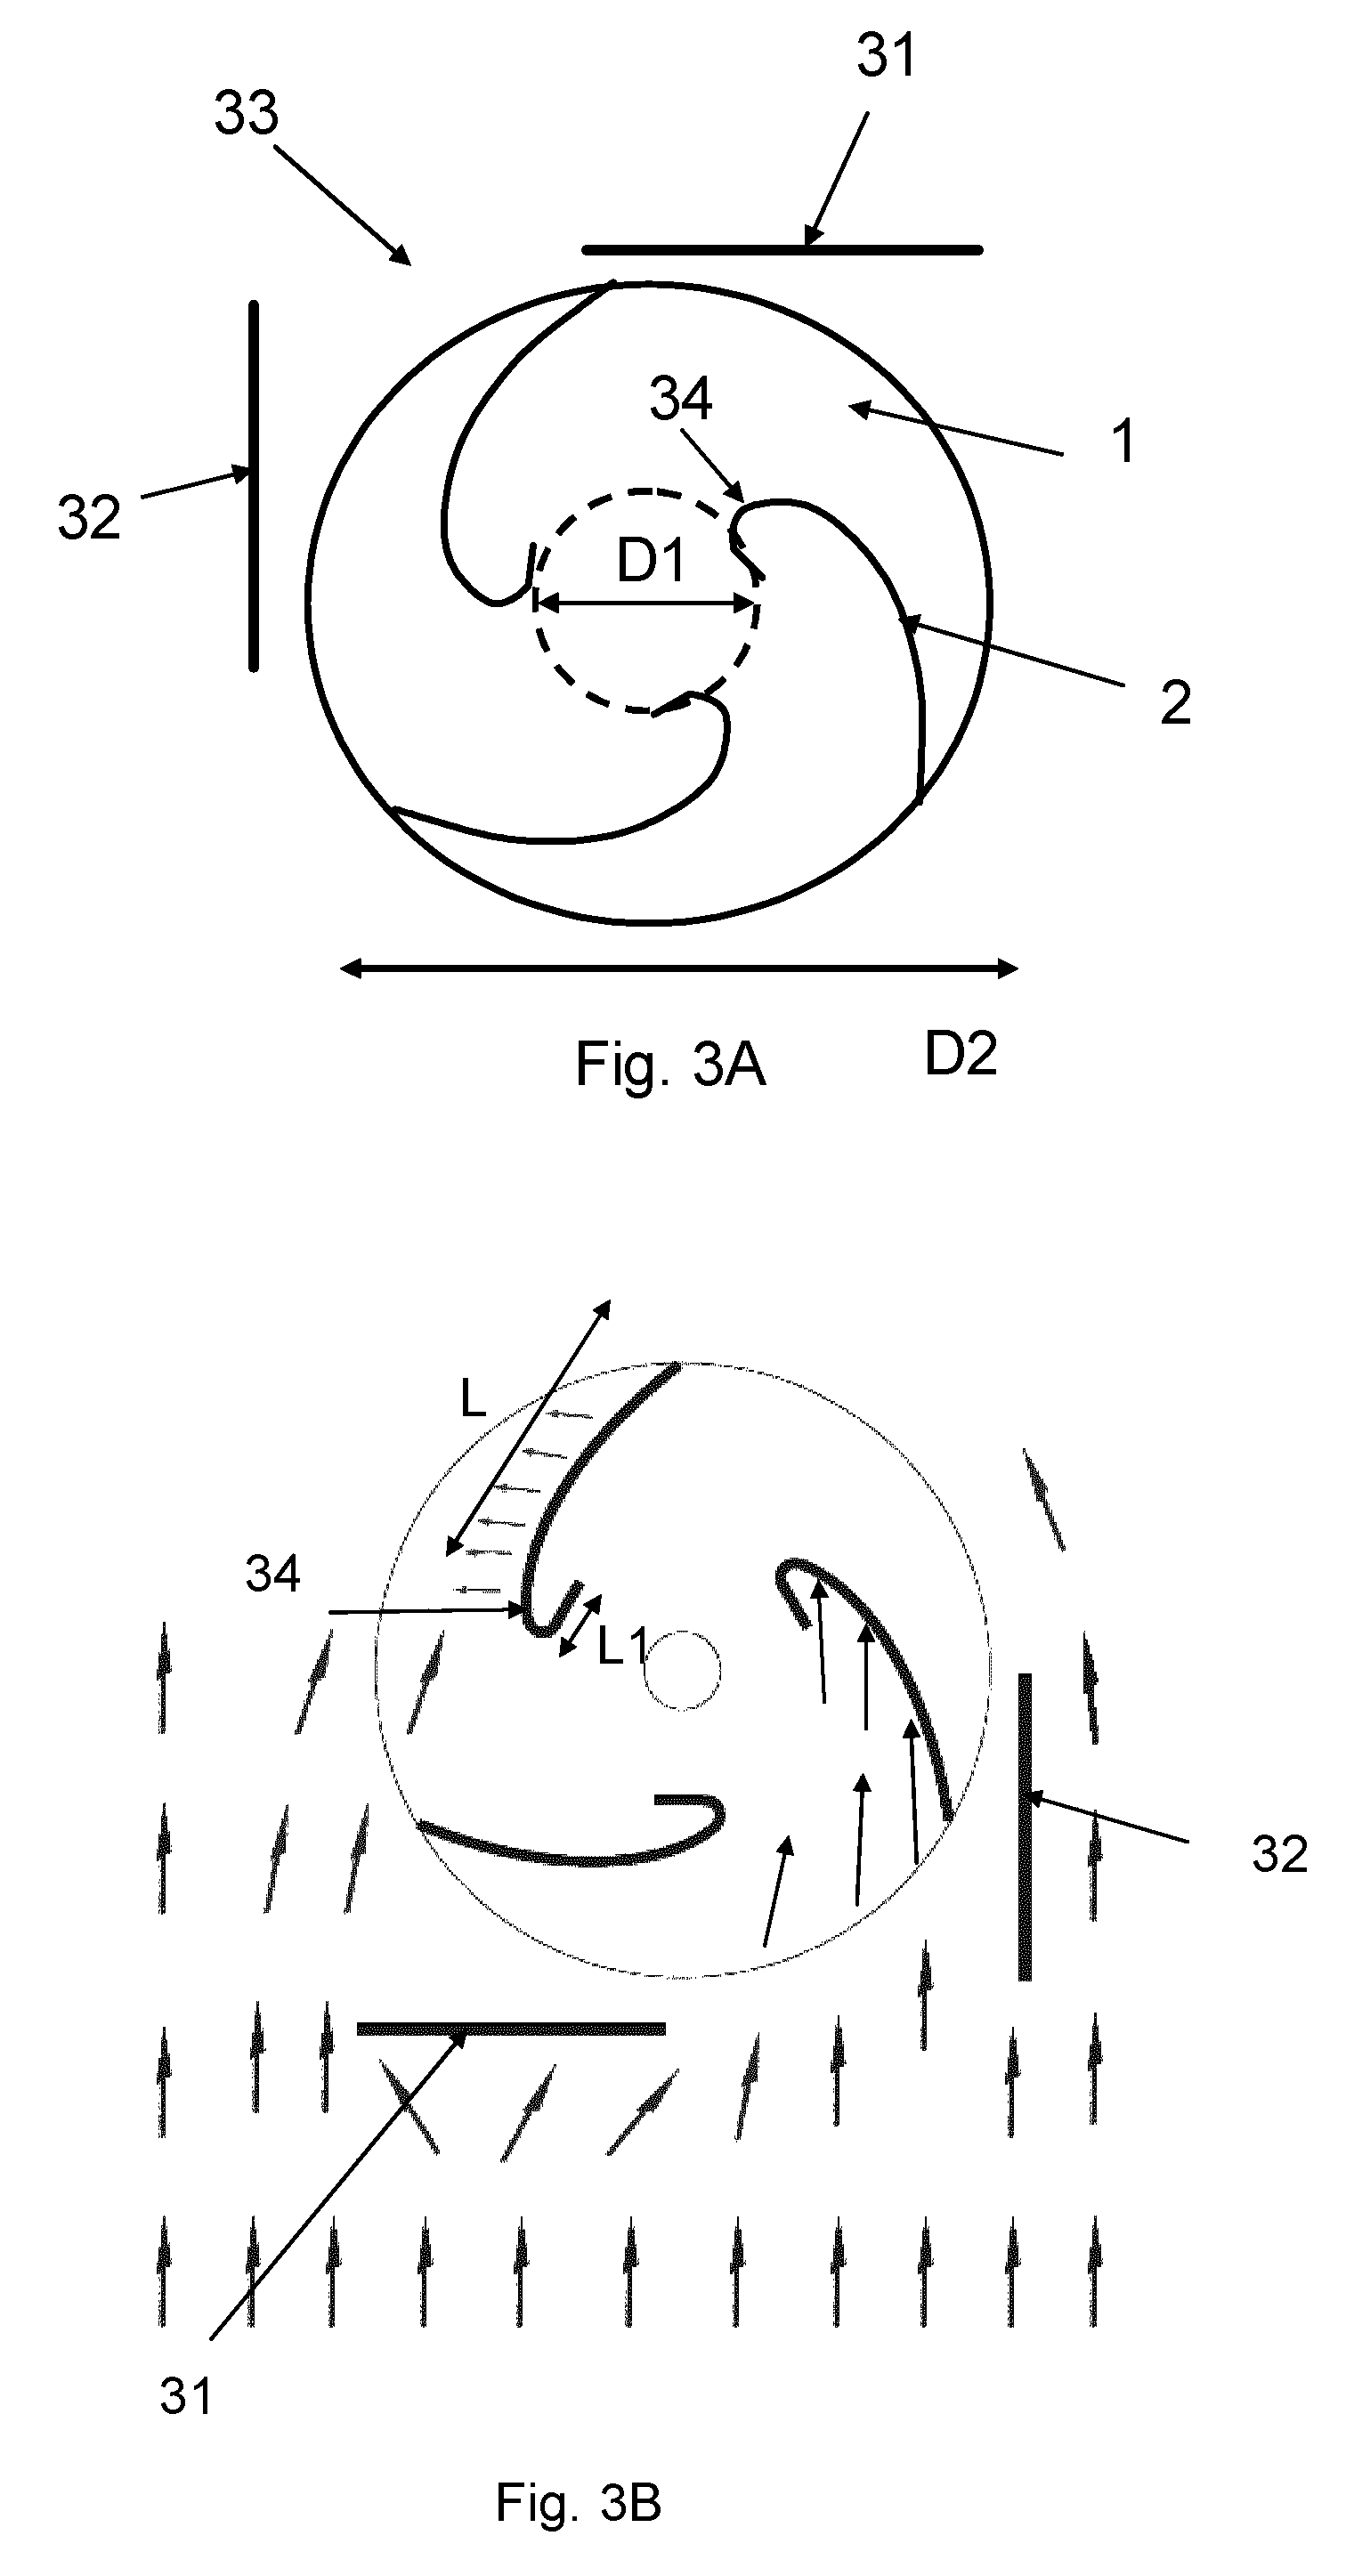 medium resolution of wo2012089806a1 wind turbine with vertical axis